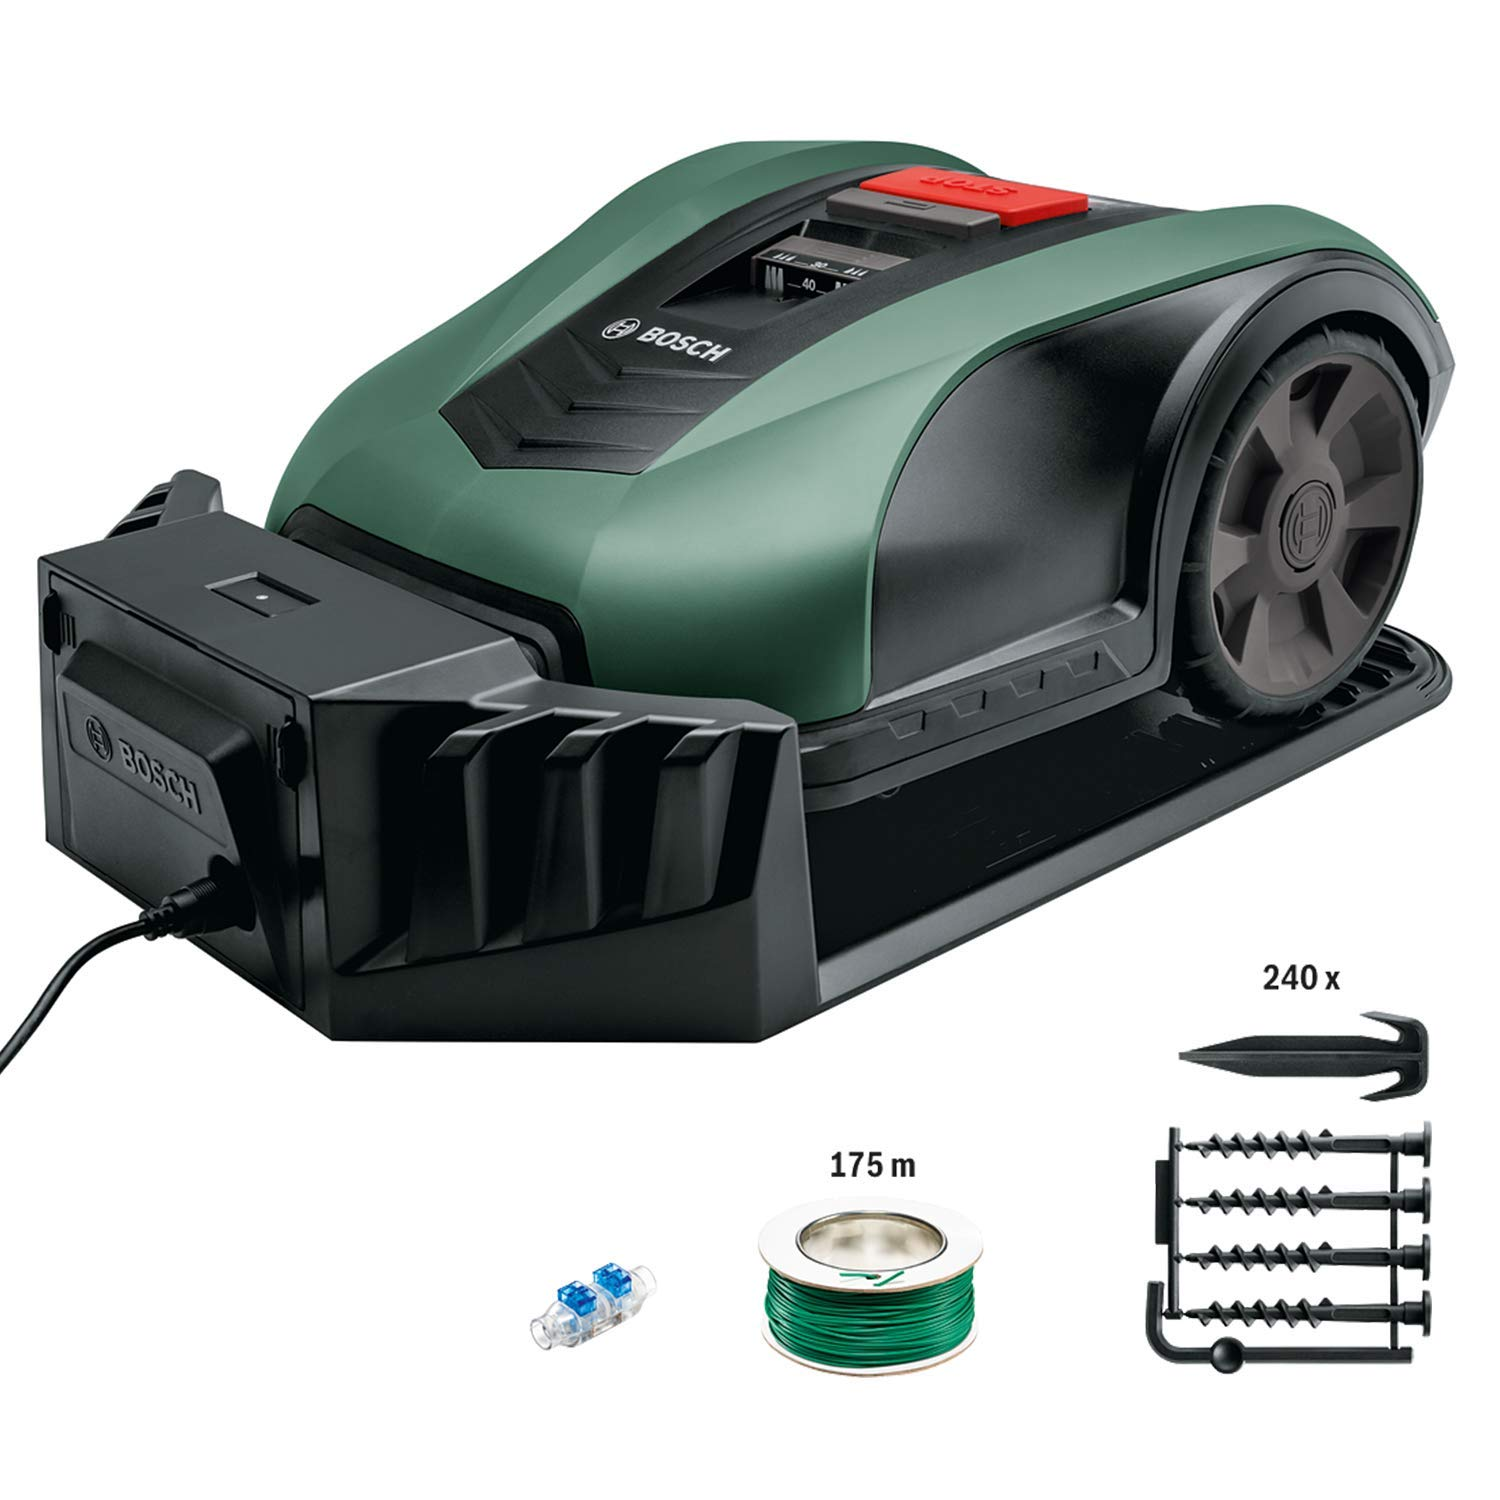 Bosch - Indego M700 Connect Robotic Lawnmower